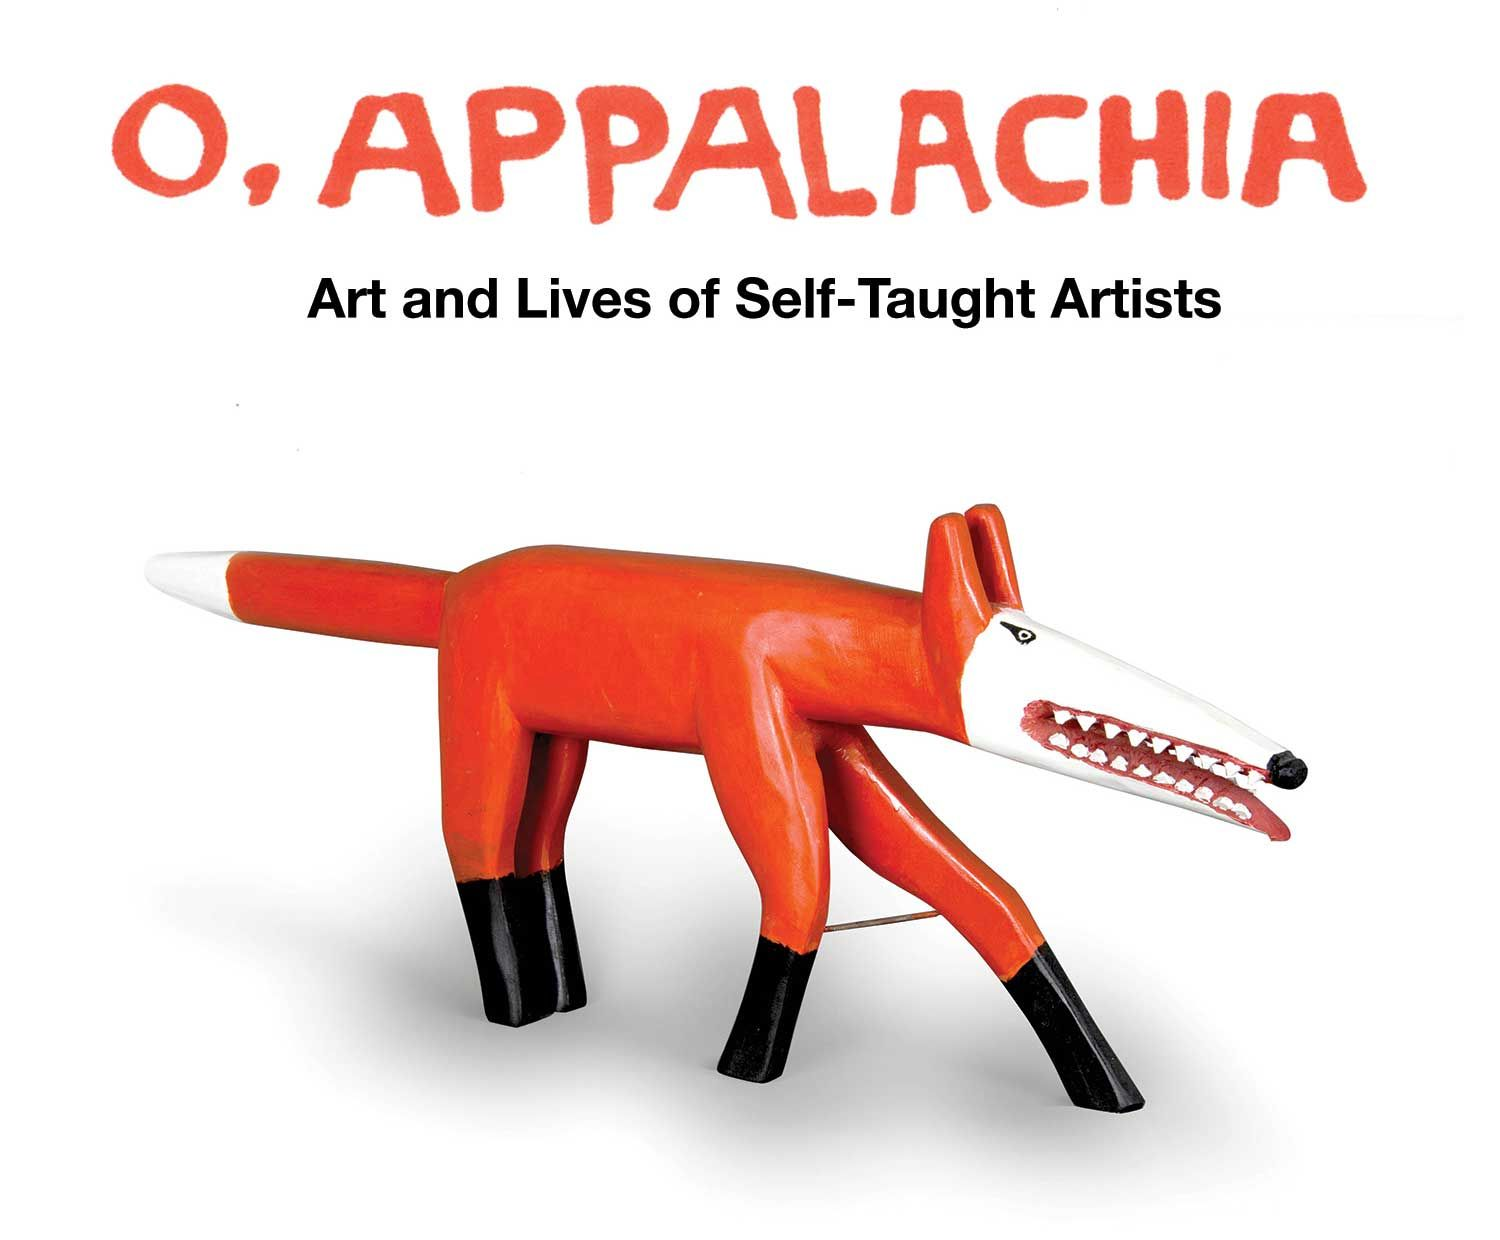 appalachia art poster